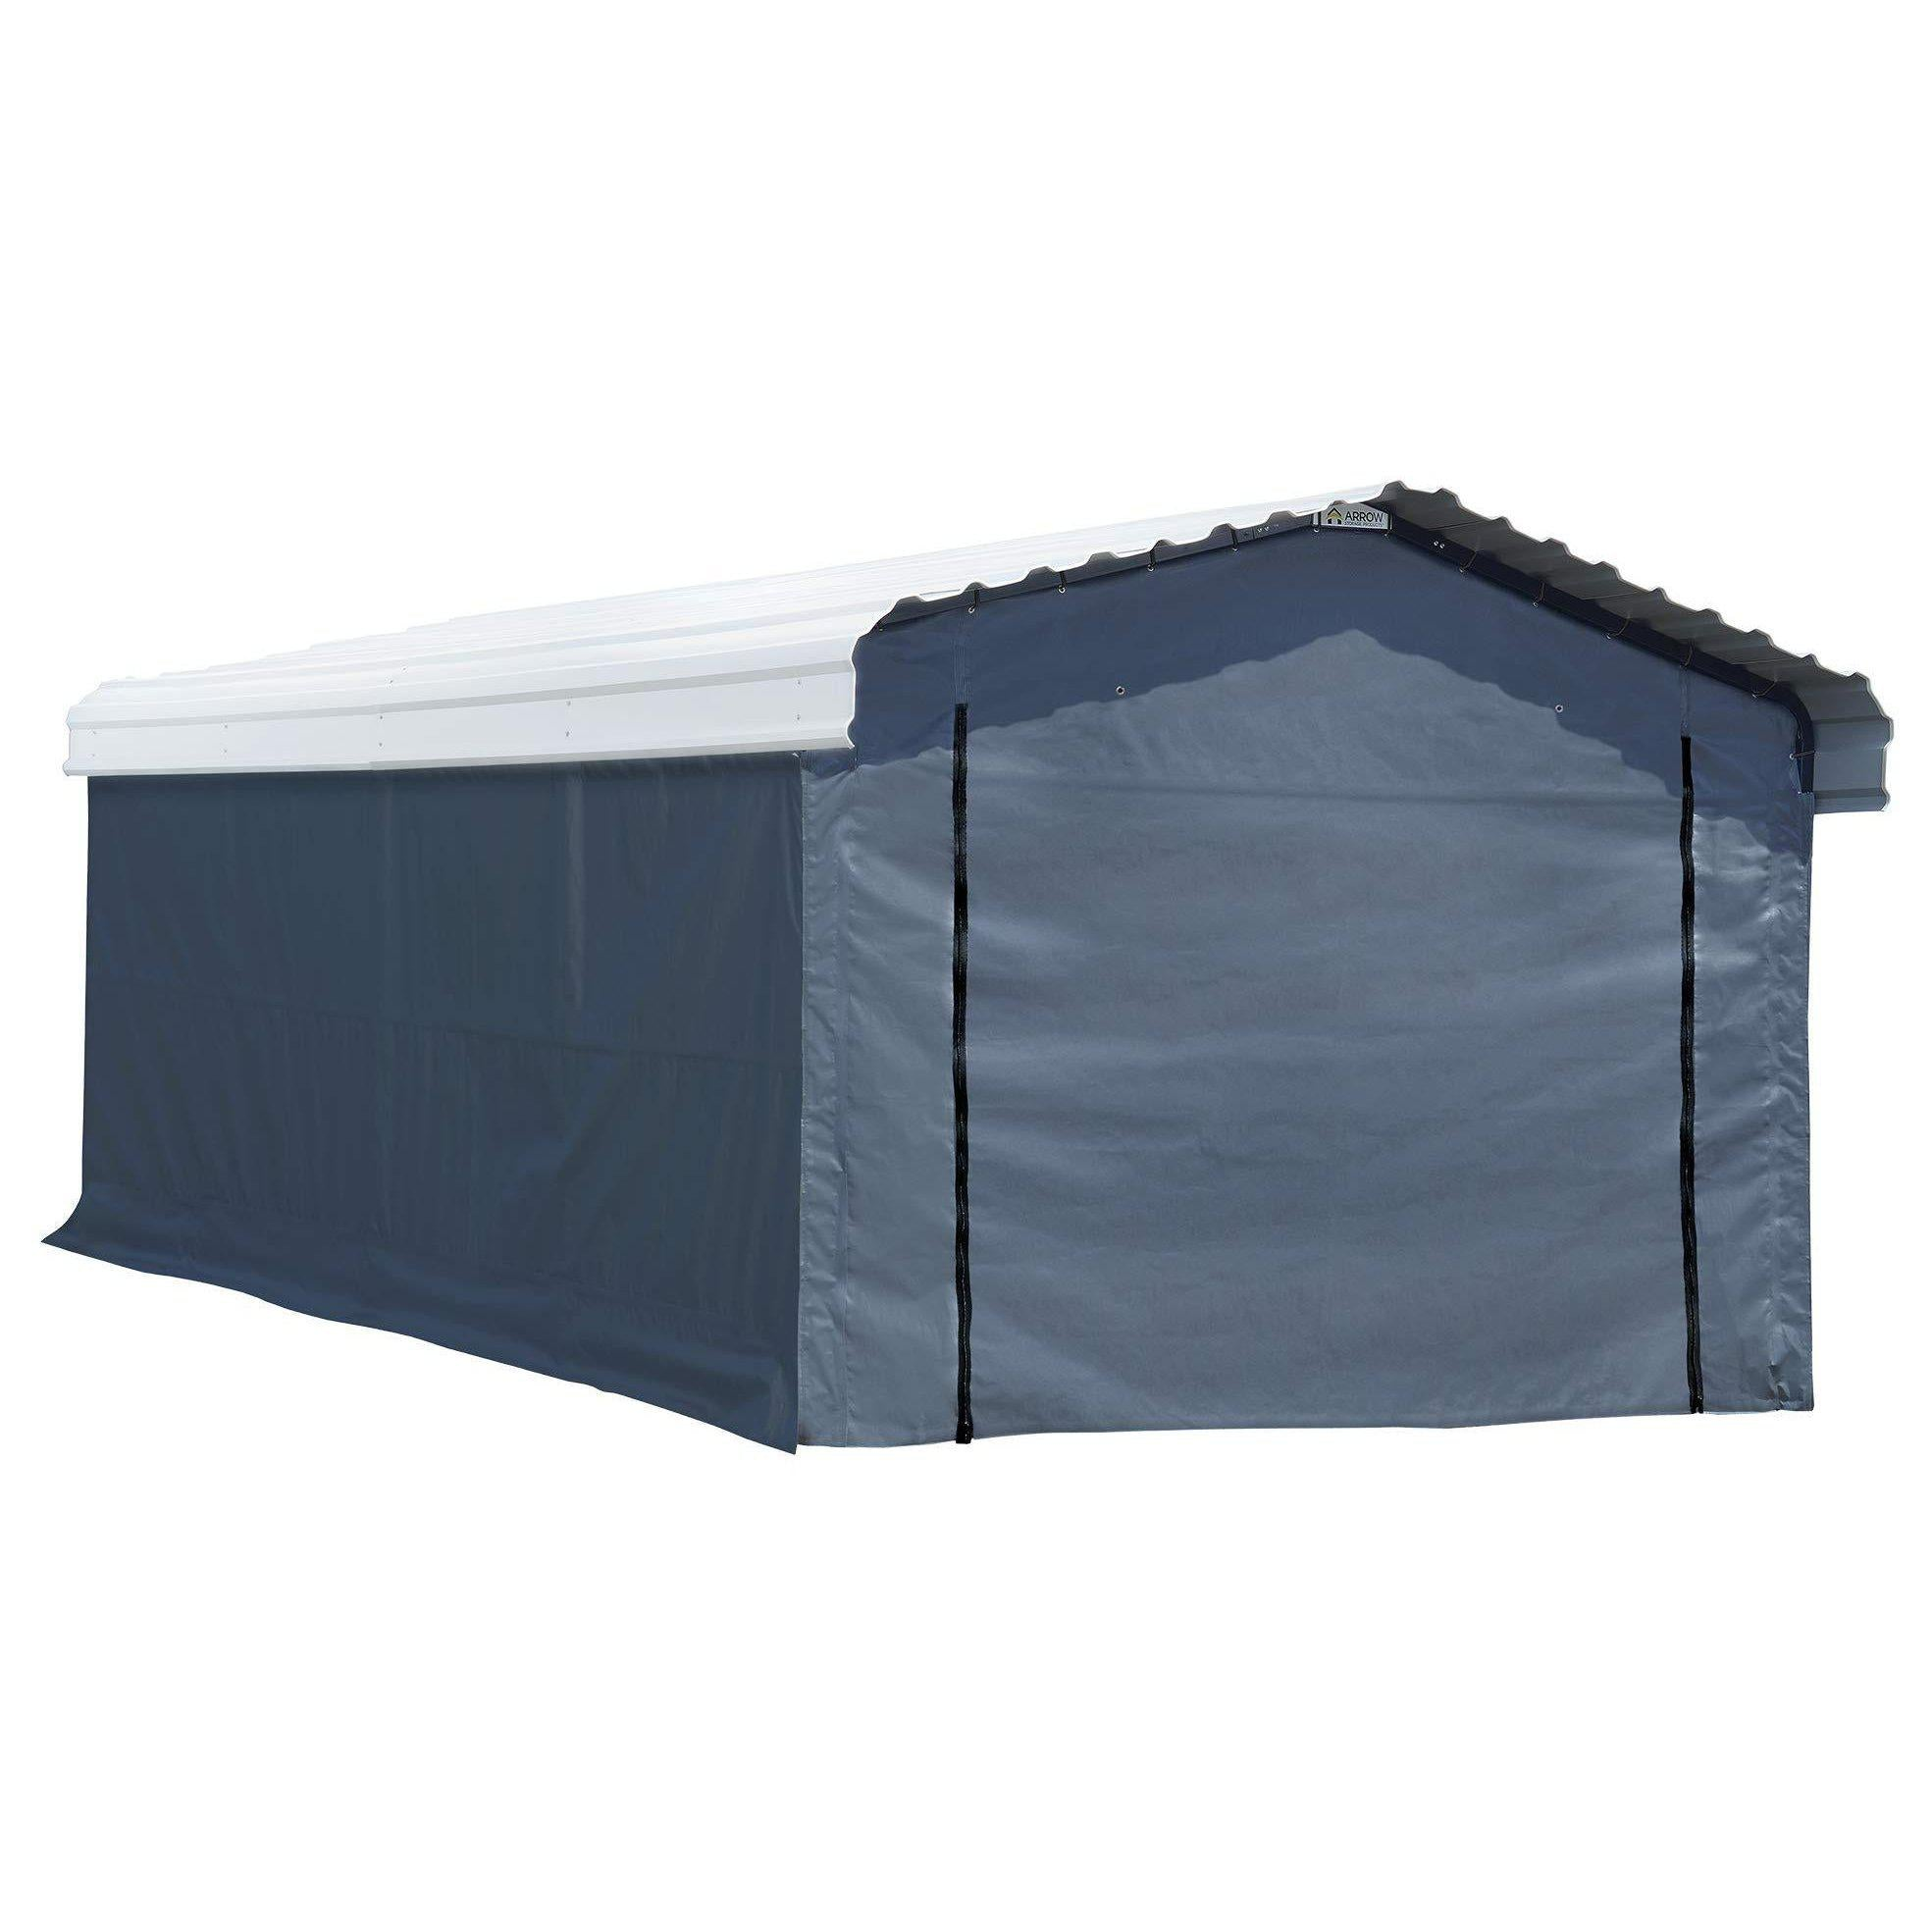 Arrow Fabric Enclosure Kit with UV Treated Cover for 12 x 20-Feet Carports, 12' x 20'